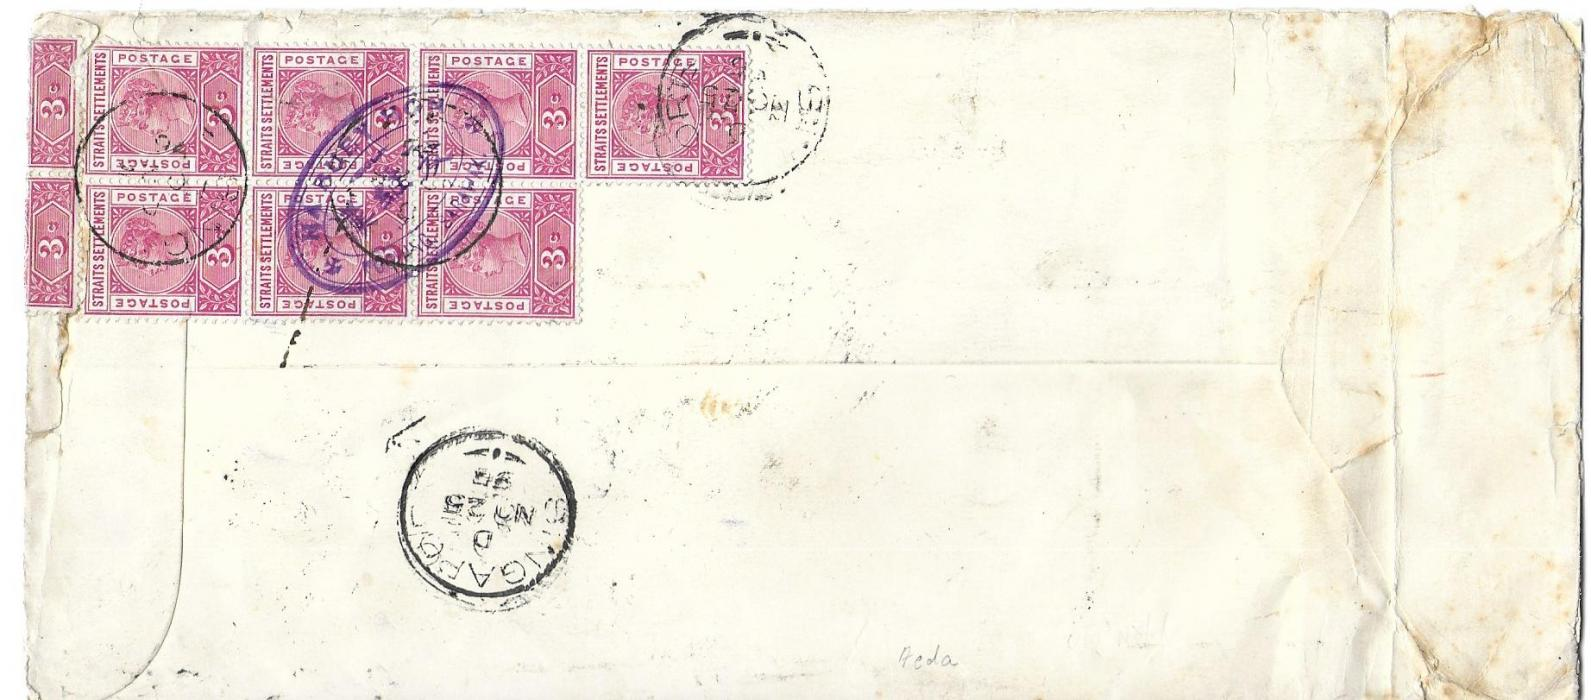 Sarawak 1896 (23 Nov) registered 'Myerscough' combination cover to London franked 1895 Sir Charles Brooke 2c. pair and three singles tied Sarawak cds of 1 DE and Straits Settlements 3c. blocks of  8 and 7, the block of eight folded over to reverse with Singapore NO 25 cds, further Sarawak cds on front together with SARAWAK R circular handstamp. All the stamps have also been cancelled by oval company chop HA BUEY HON Kuching Sarawak. Some slight faults, a striking cover.